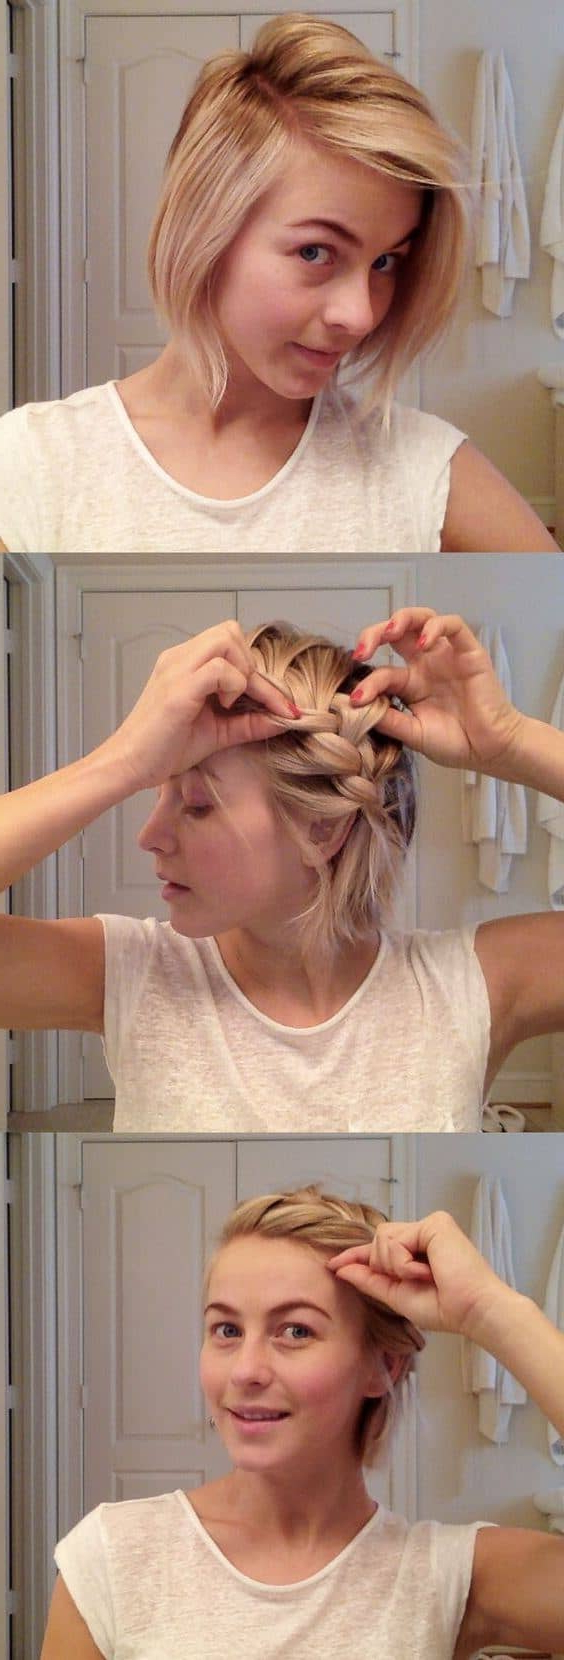 2020 Long And Short Bob Braid Hairstyles Throughout 27 Braid Hairstyles For Short Hair That Are Simply Gorgeous (View 10 of 20)